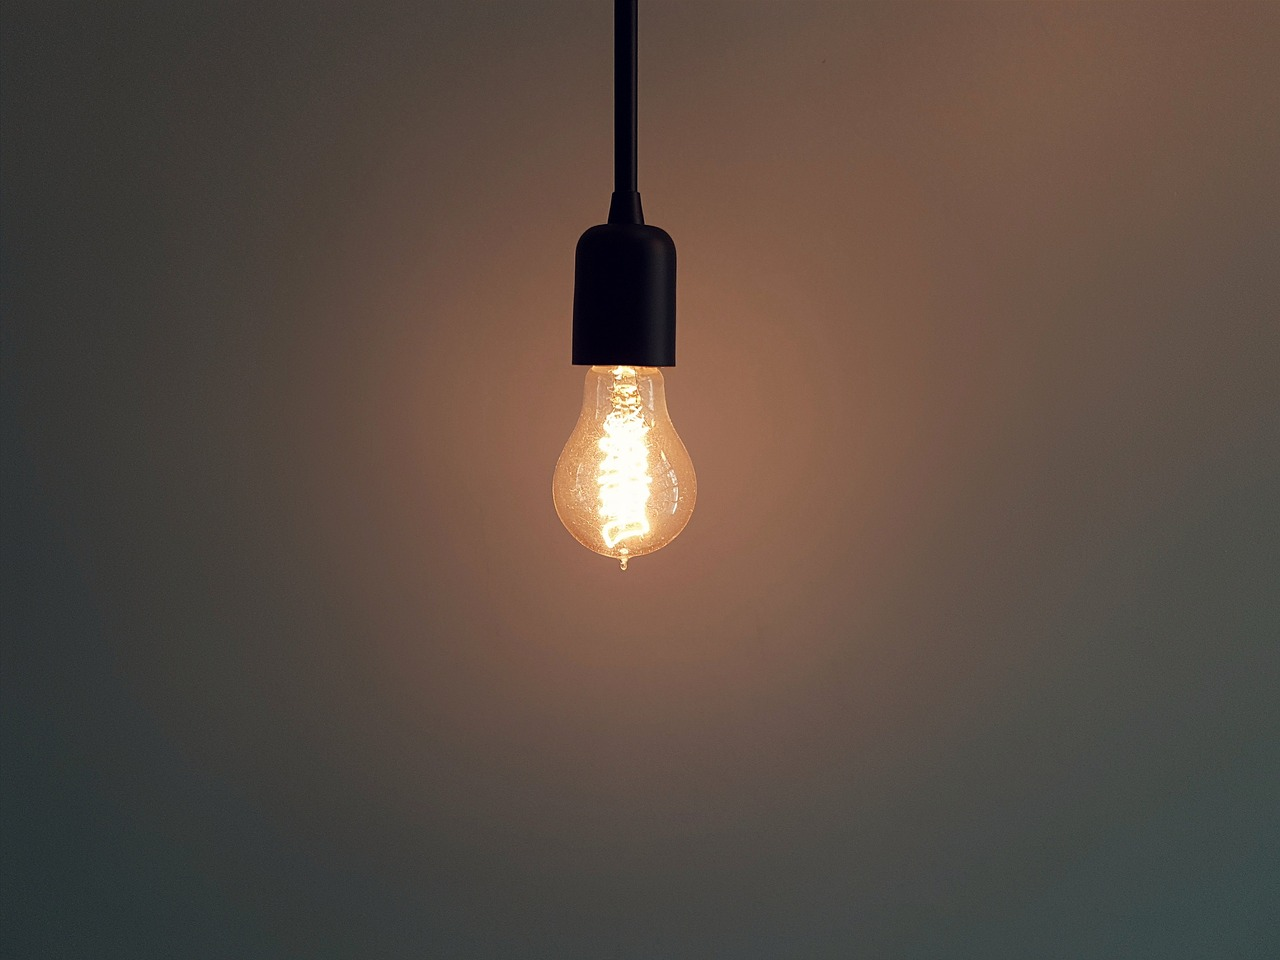 light bulb hanging from ceiling